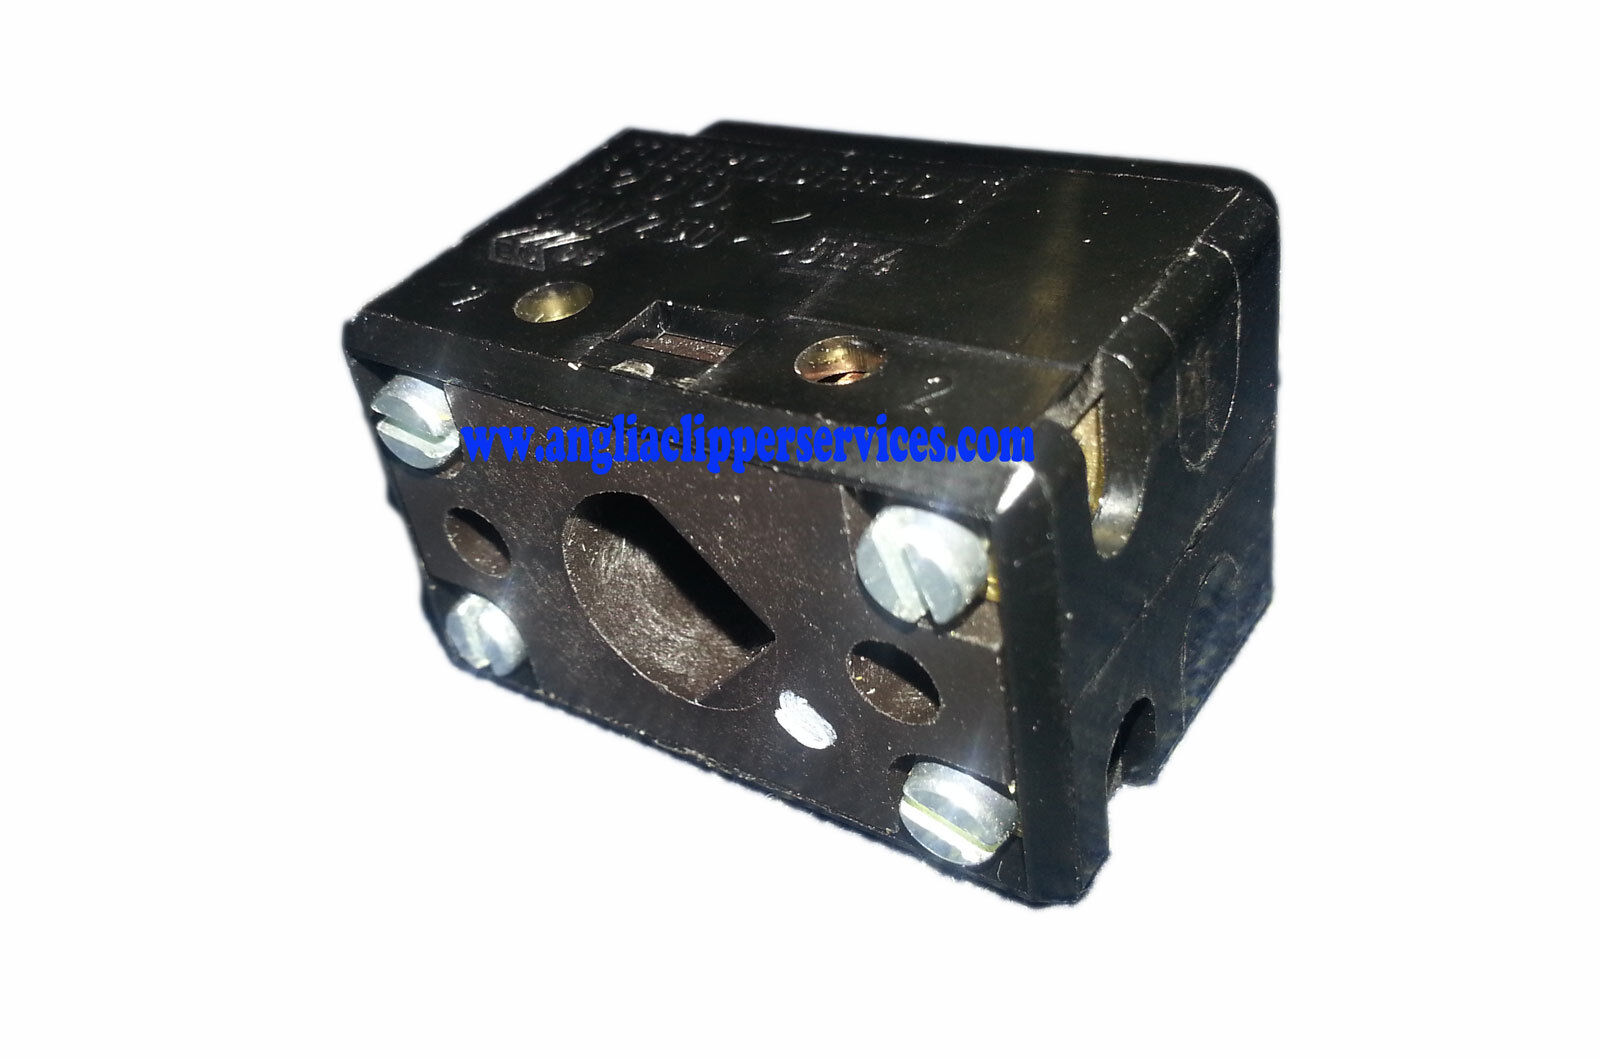 Lister Laser Spare Part - Overload Switch - Part No. 258-32700